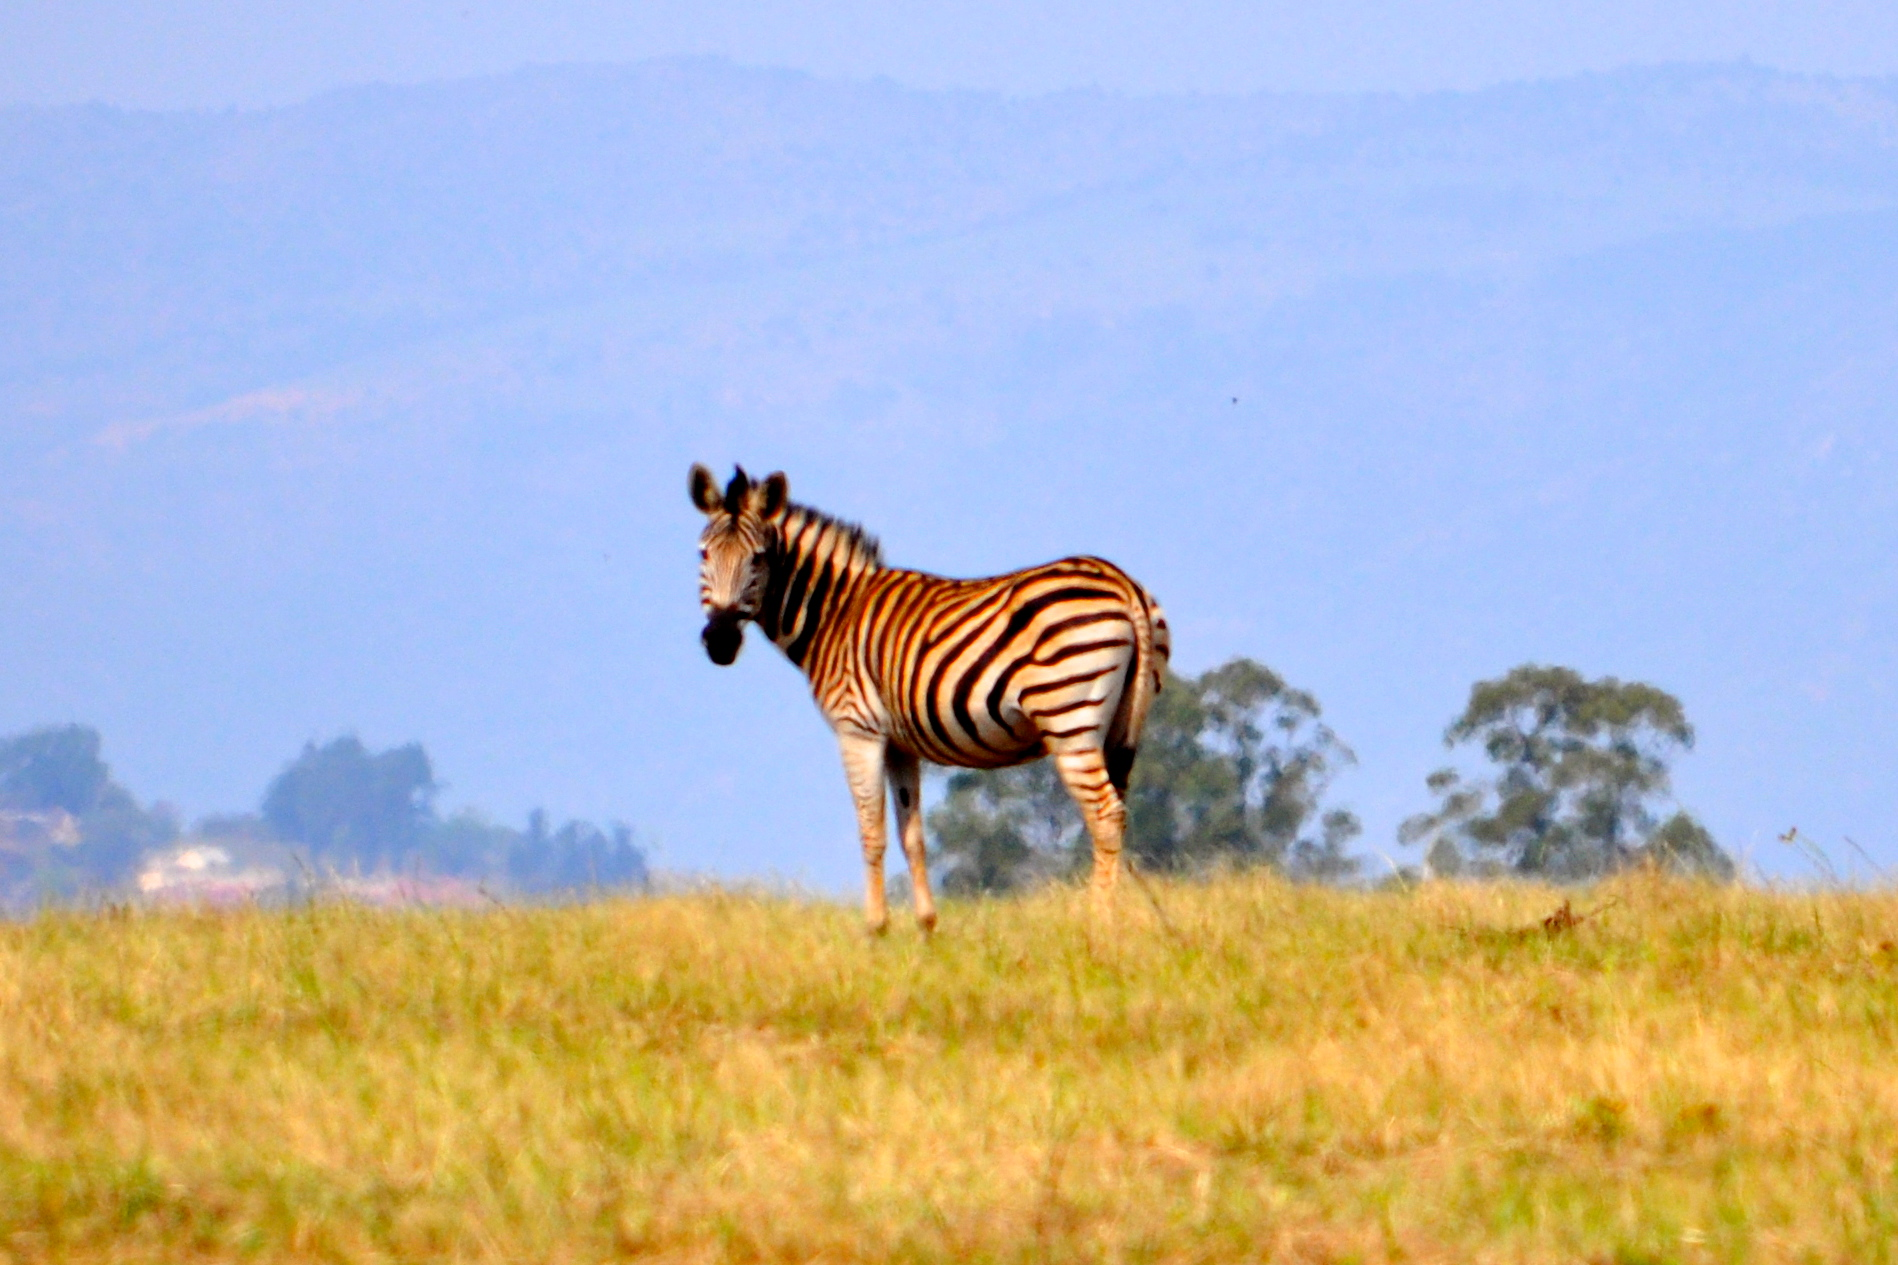 Image of a zebra